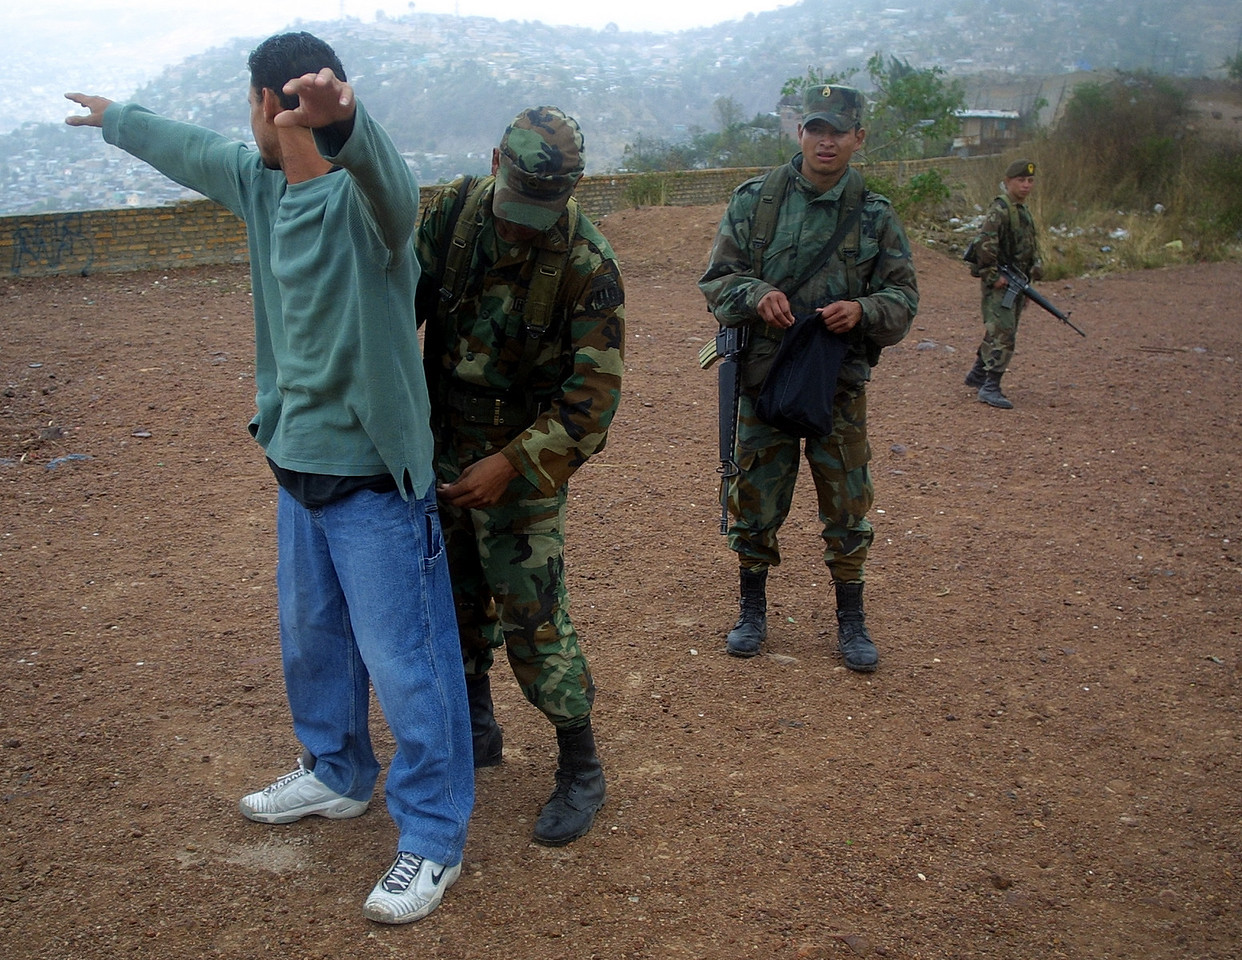 "Honduran soldiers check a citizen for weapons in the impoverished Campo Cielo neighborhood in Tegucigalpa, Honduras, March 5, 2002. Nearly 4000 soldiers and police are patroling  the steets of Tegucigalpa and three other Honduran cities in an effort by newly elected president Ricardo Maduro to cut back on soaring crime rates in the Central American country. The new ""zero tolerance"" policy has reduced violent crime by more than 70% but critics wonder how long the government can support the extra costs of the patrols.  REUTERS/ Adam Bernstein."